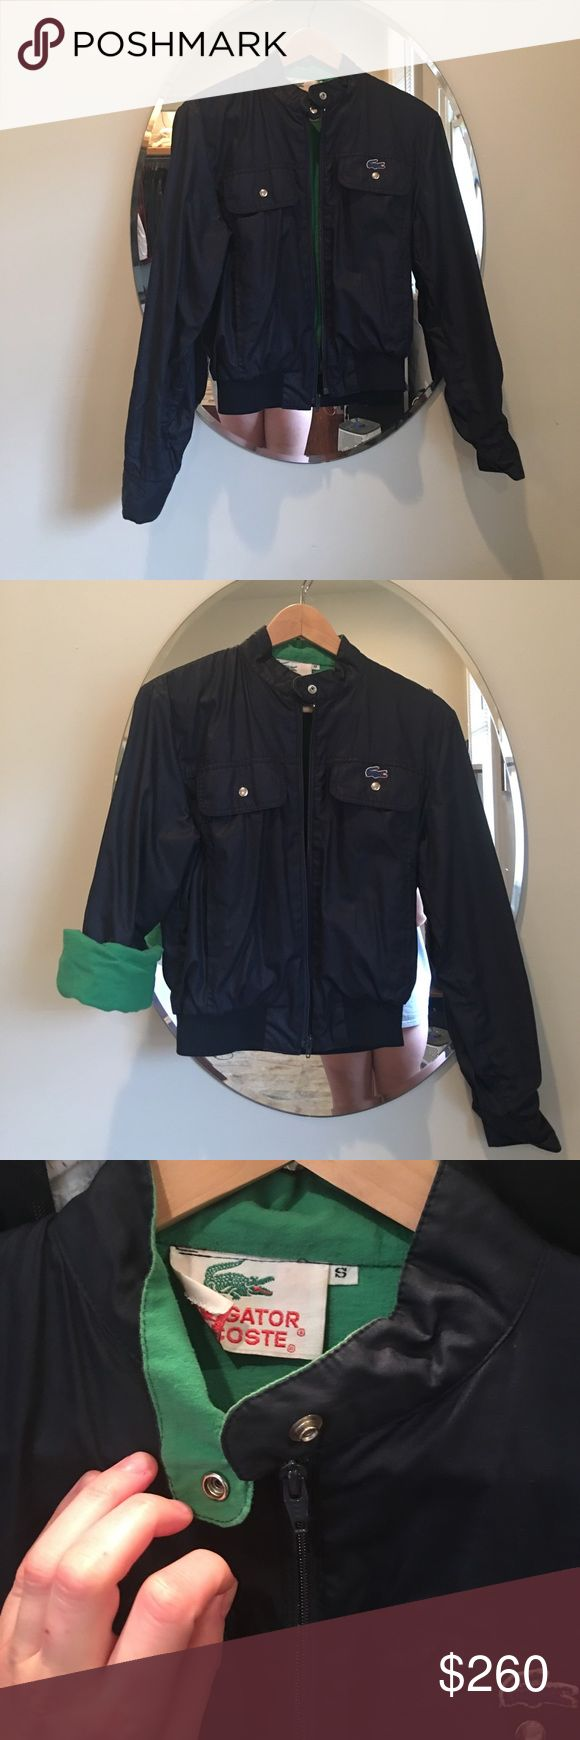 Small Vintage Navy & Green Lacoste Bomber Jacket Vintage Navy Lacoste Bomber Jacket, size Small, with a green cotton lining and cuffs that unbutton & roll up! Has 2 Front Pockets, as well as 2 hand pockets, and zips with a button on the collar. In gorgeous condition. NOT REALLY FOR SALE, Just part of my closet. Lacoste Jackets & Coats Utility Jackets